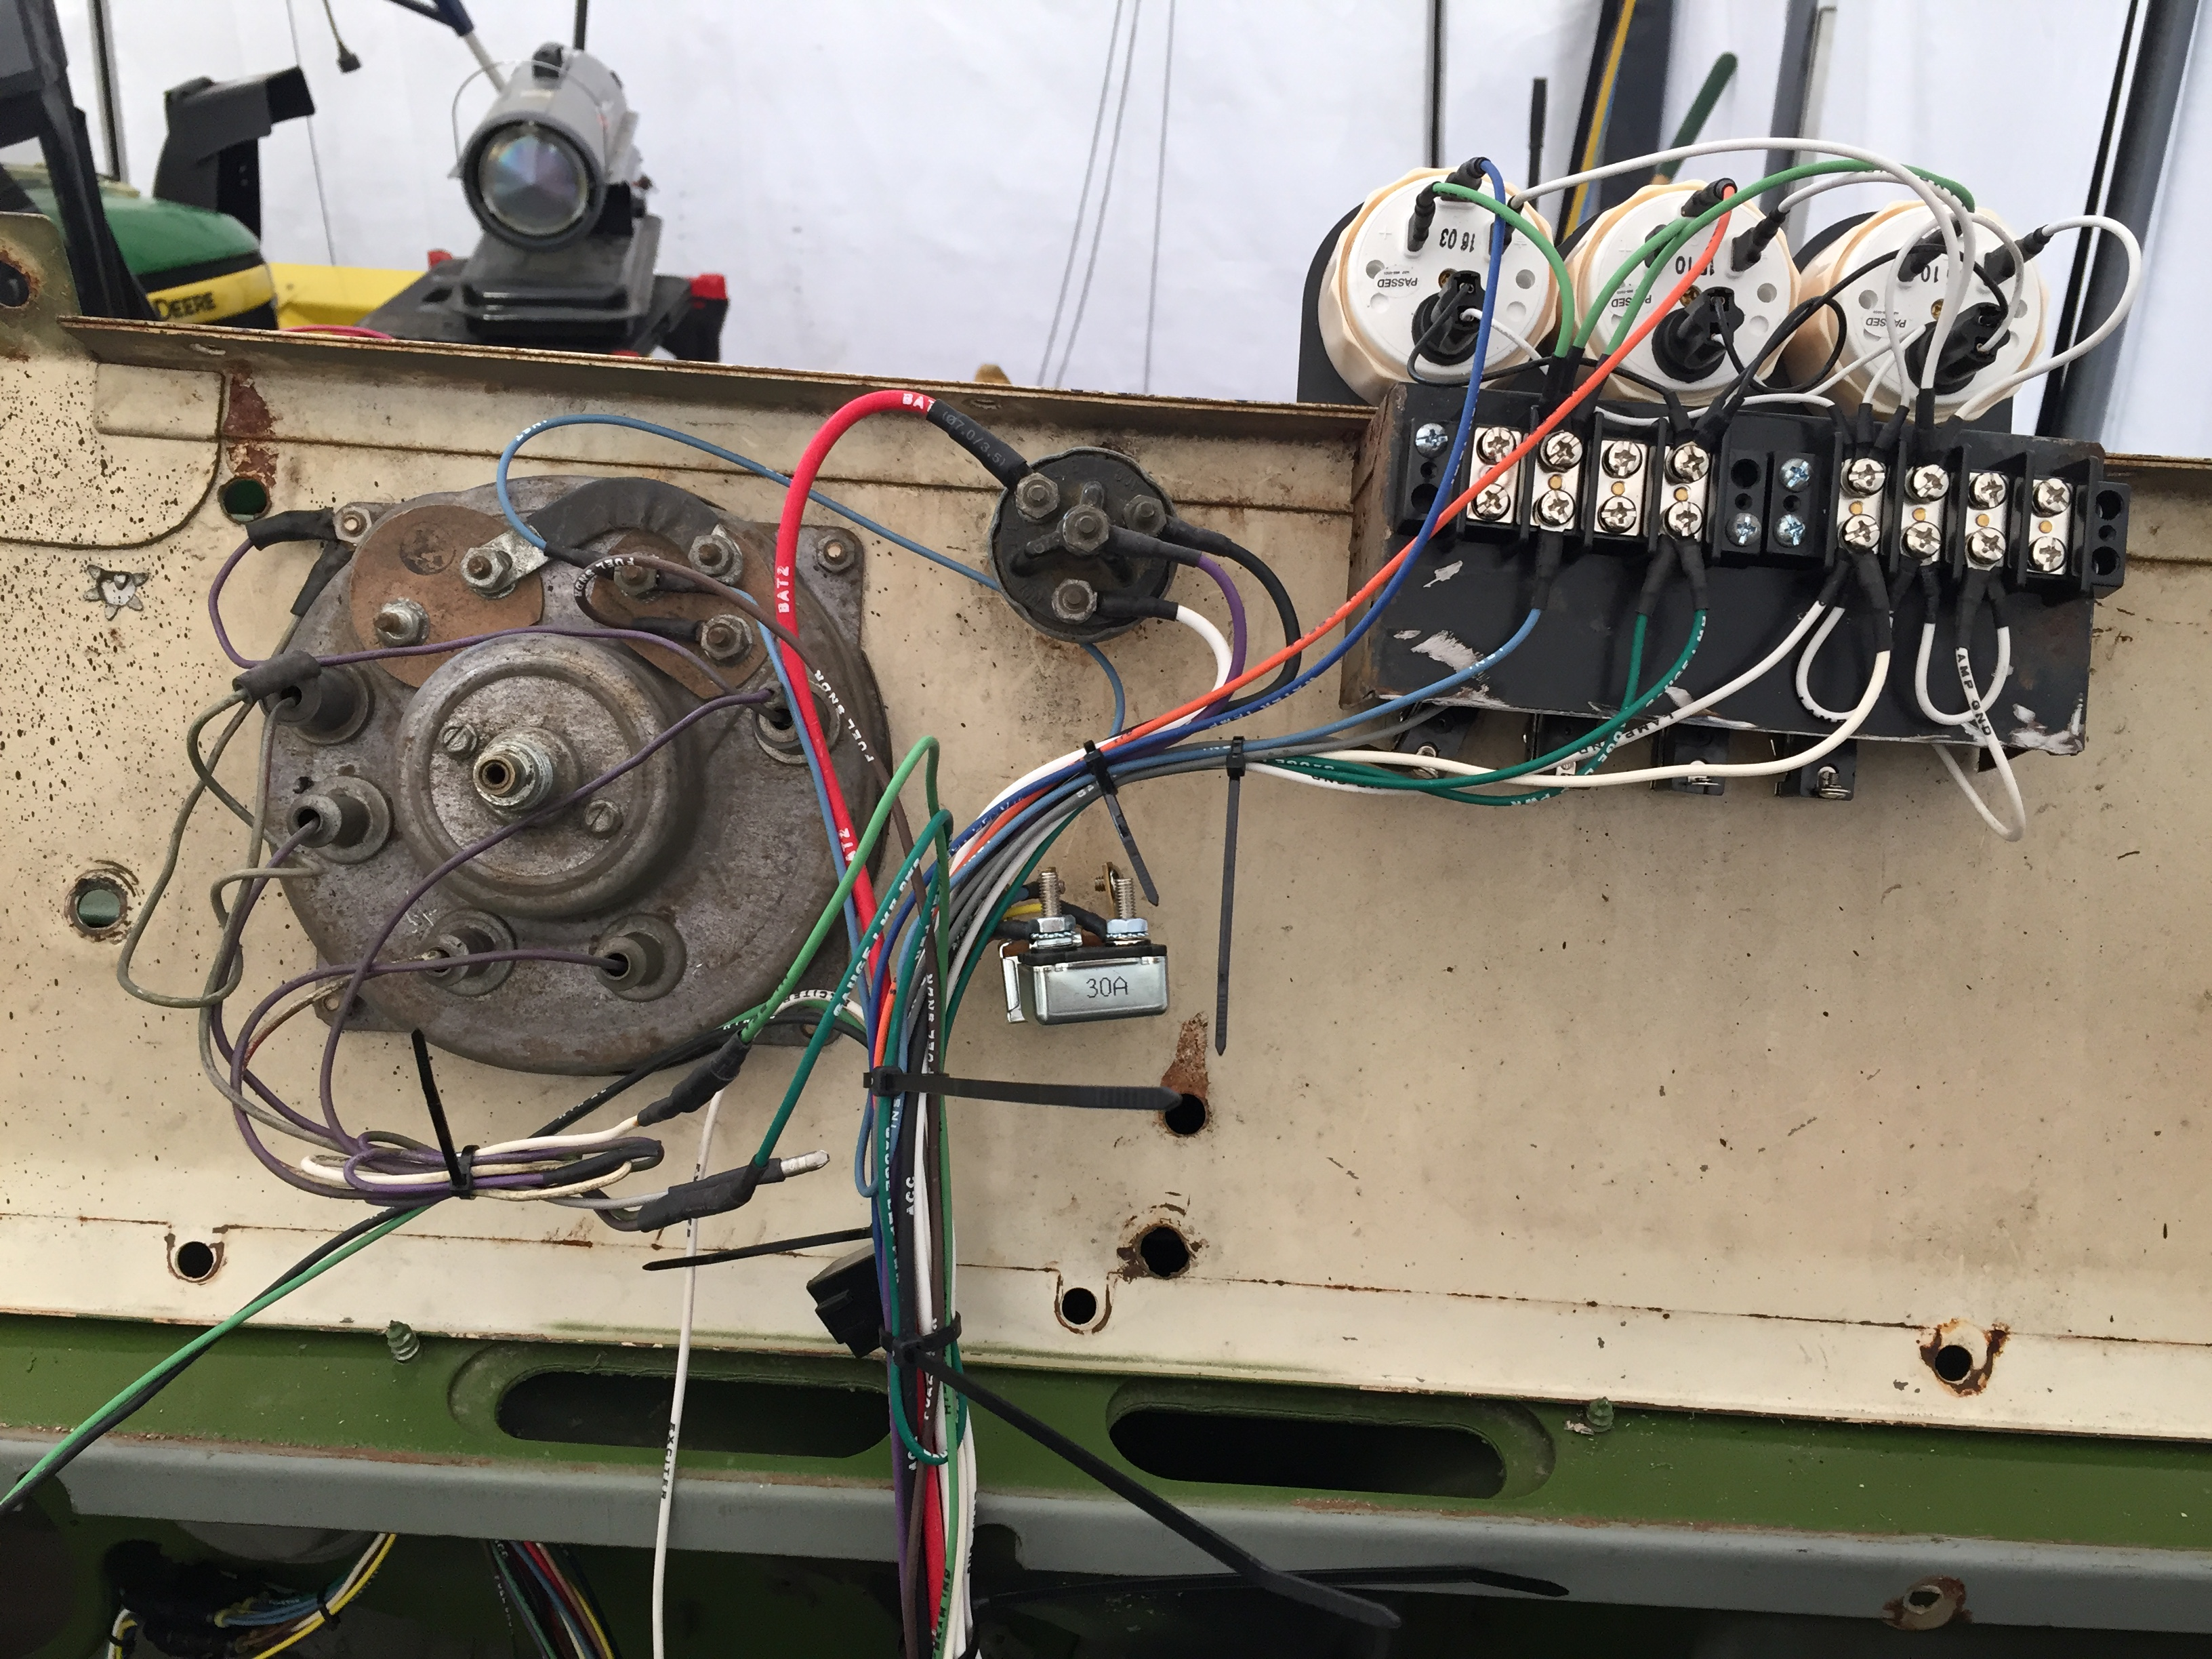 1966 Jeep Cj 5 Upgrades And Future Rebuild Vintage Vehicles Wiring Harness Rebuilders Been Plugging Away At This Its A Slow Process When One Is Gone Through The Week But Im Gaining